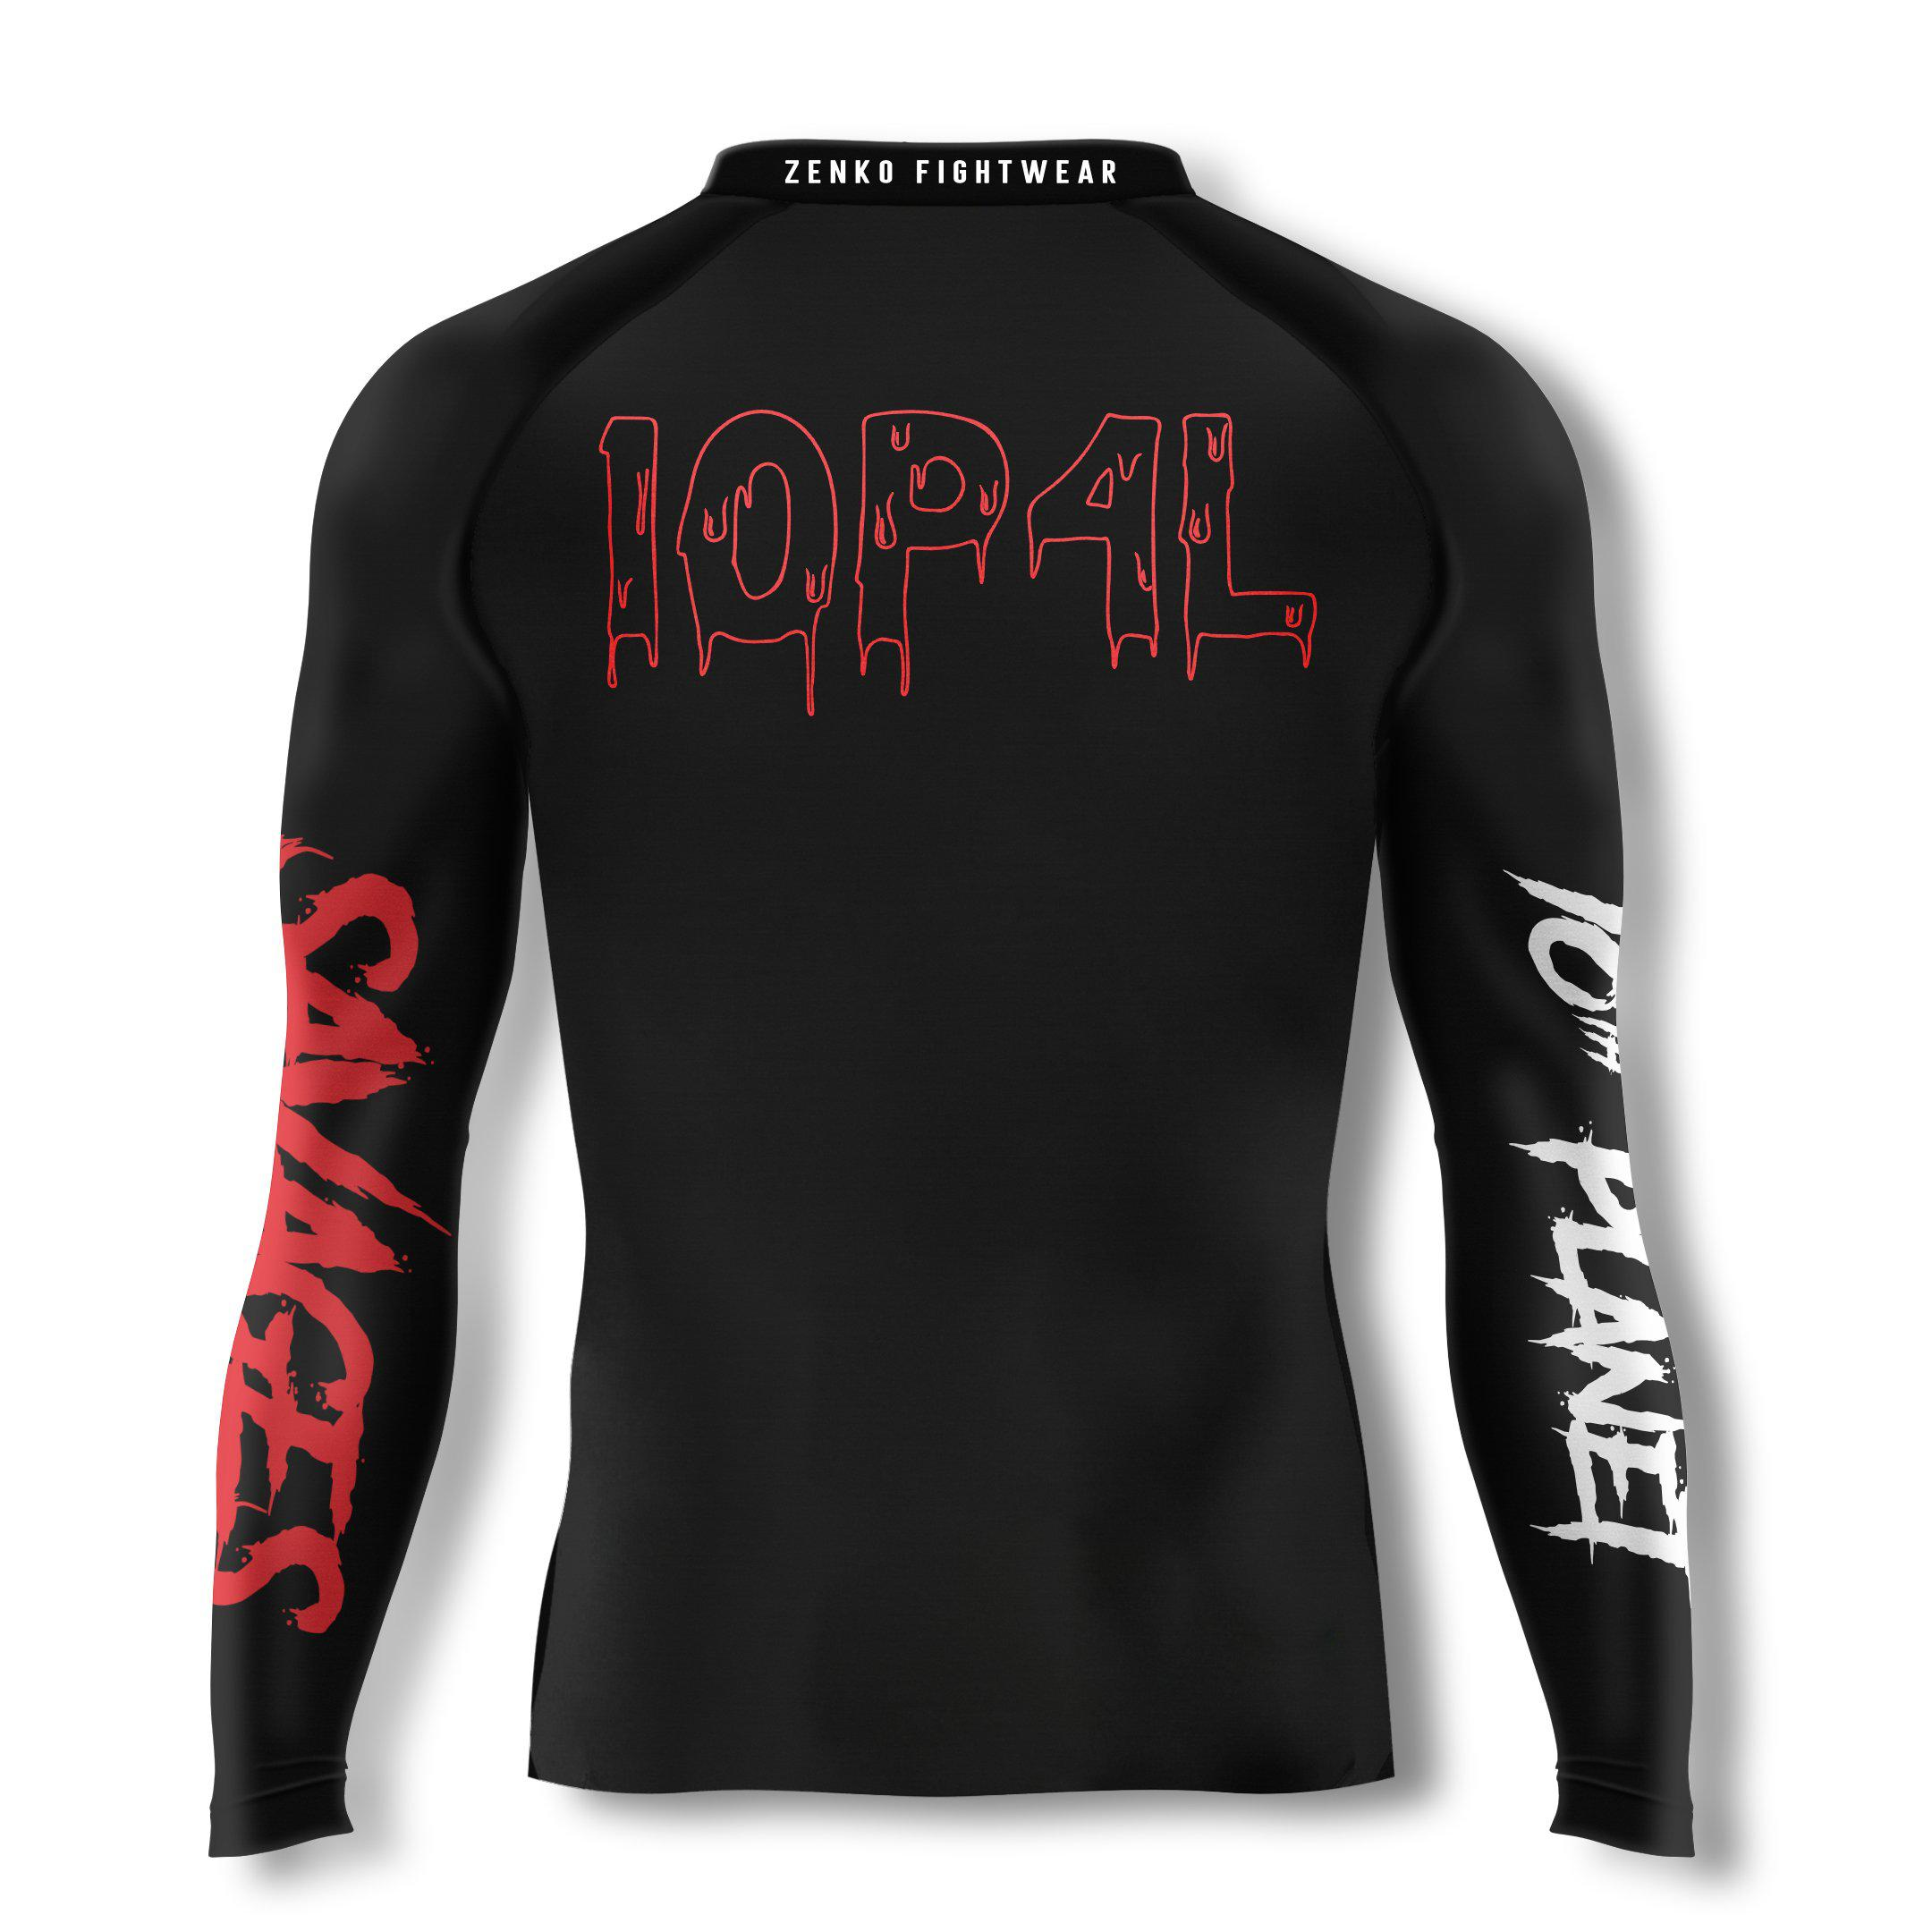 10th Planet Savages Zombie Rashguard - Zenko Fightwear